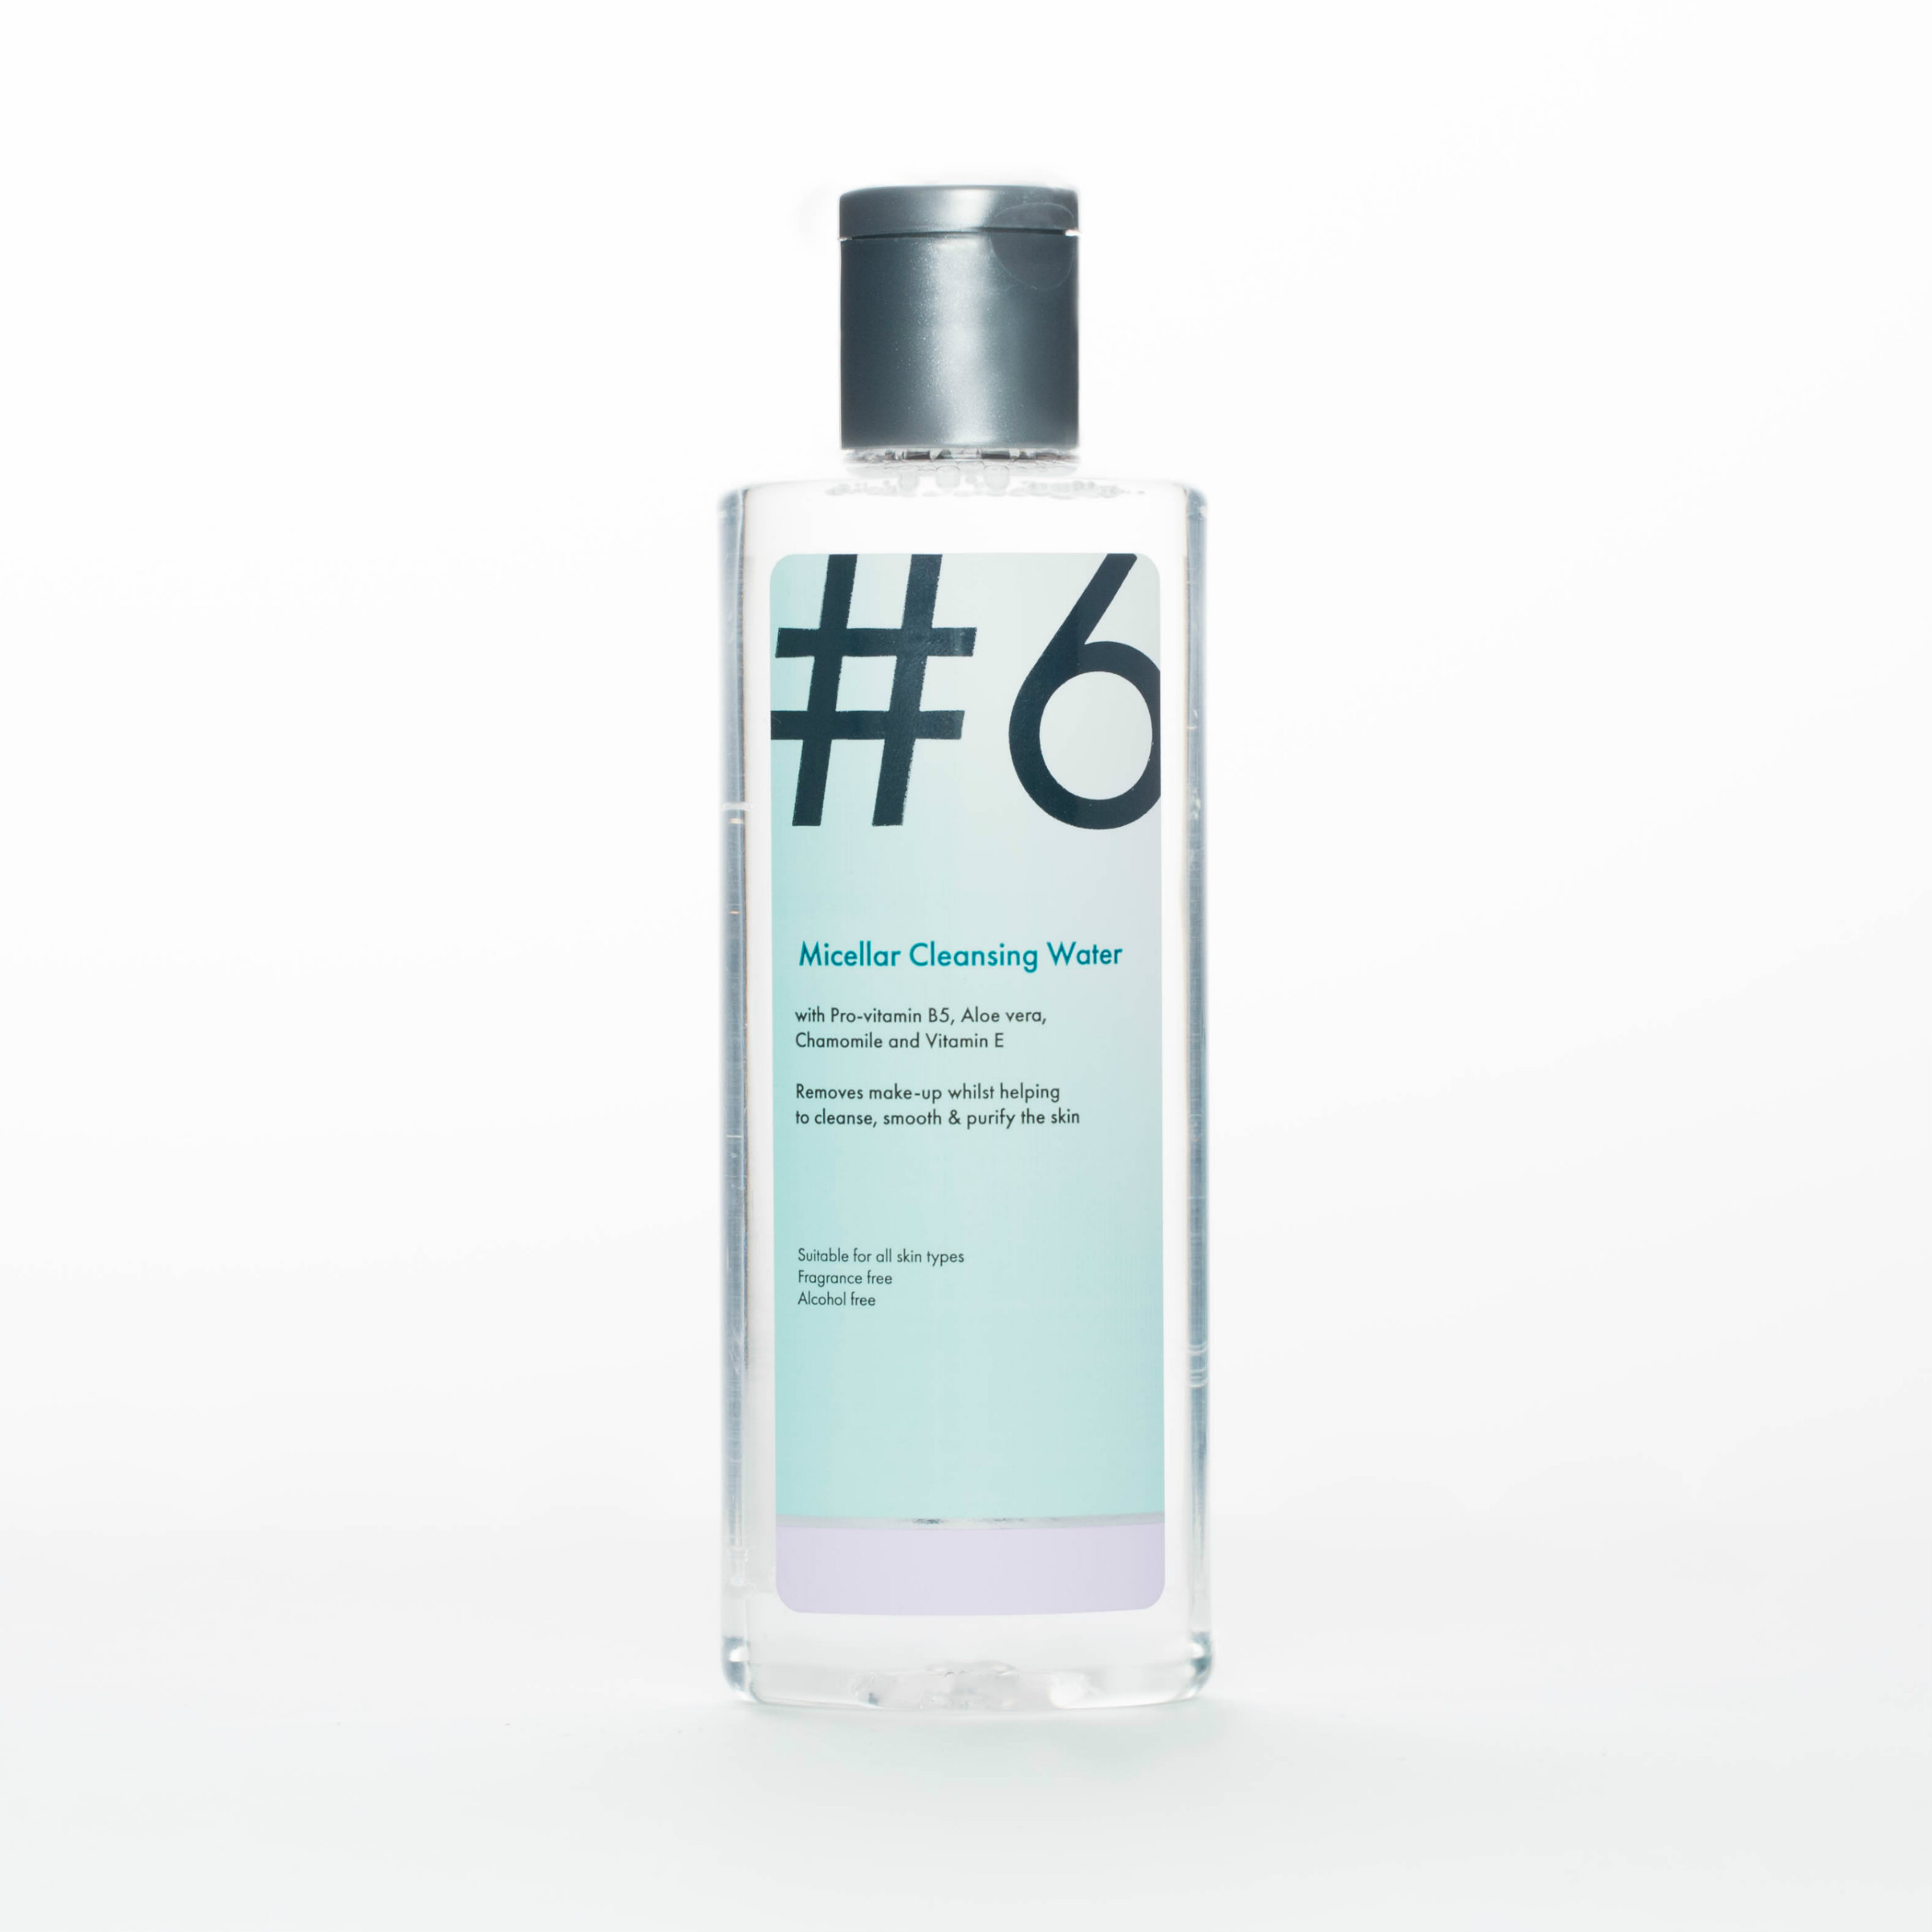 #6 Micellar Cleansing Water - With Pro-vitamin B5, Aloe vera, Chamomile and Vitamin E. Removes make-up whilst helping to cleanse, smooth & purify the skin.Our gentle #6 Micellar Cleansing Water is perfect for sensitive skin. It uses tiny micelles which attract dirt and make up like a magnet, removing them in one easy step. Containing no harsh detergents or chemicals it will leave your skin cleansed, nourished and hydrated.Suitable for all skin types including sensitive. Hypoallergenic. Dermatologically tested. Ophthalmologically approved. Fragrance Free. Alcohol free. Suitable for Vegans. Made in the UK.